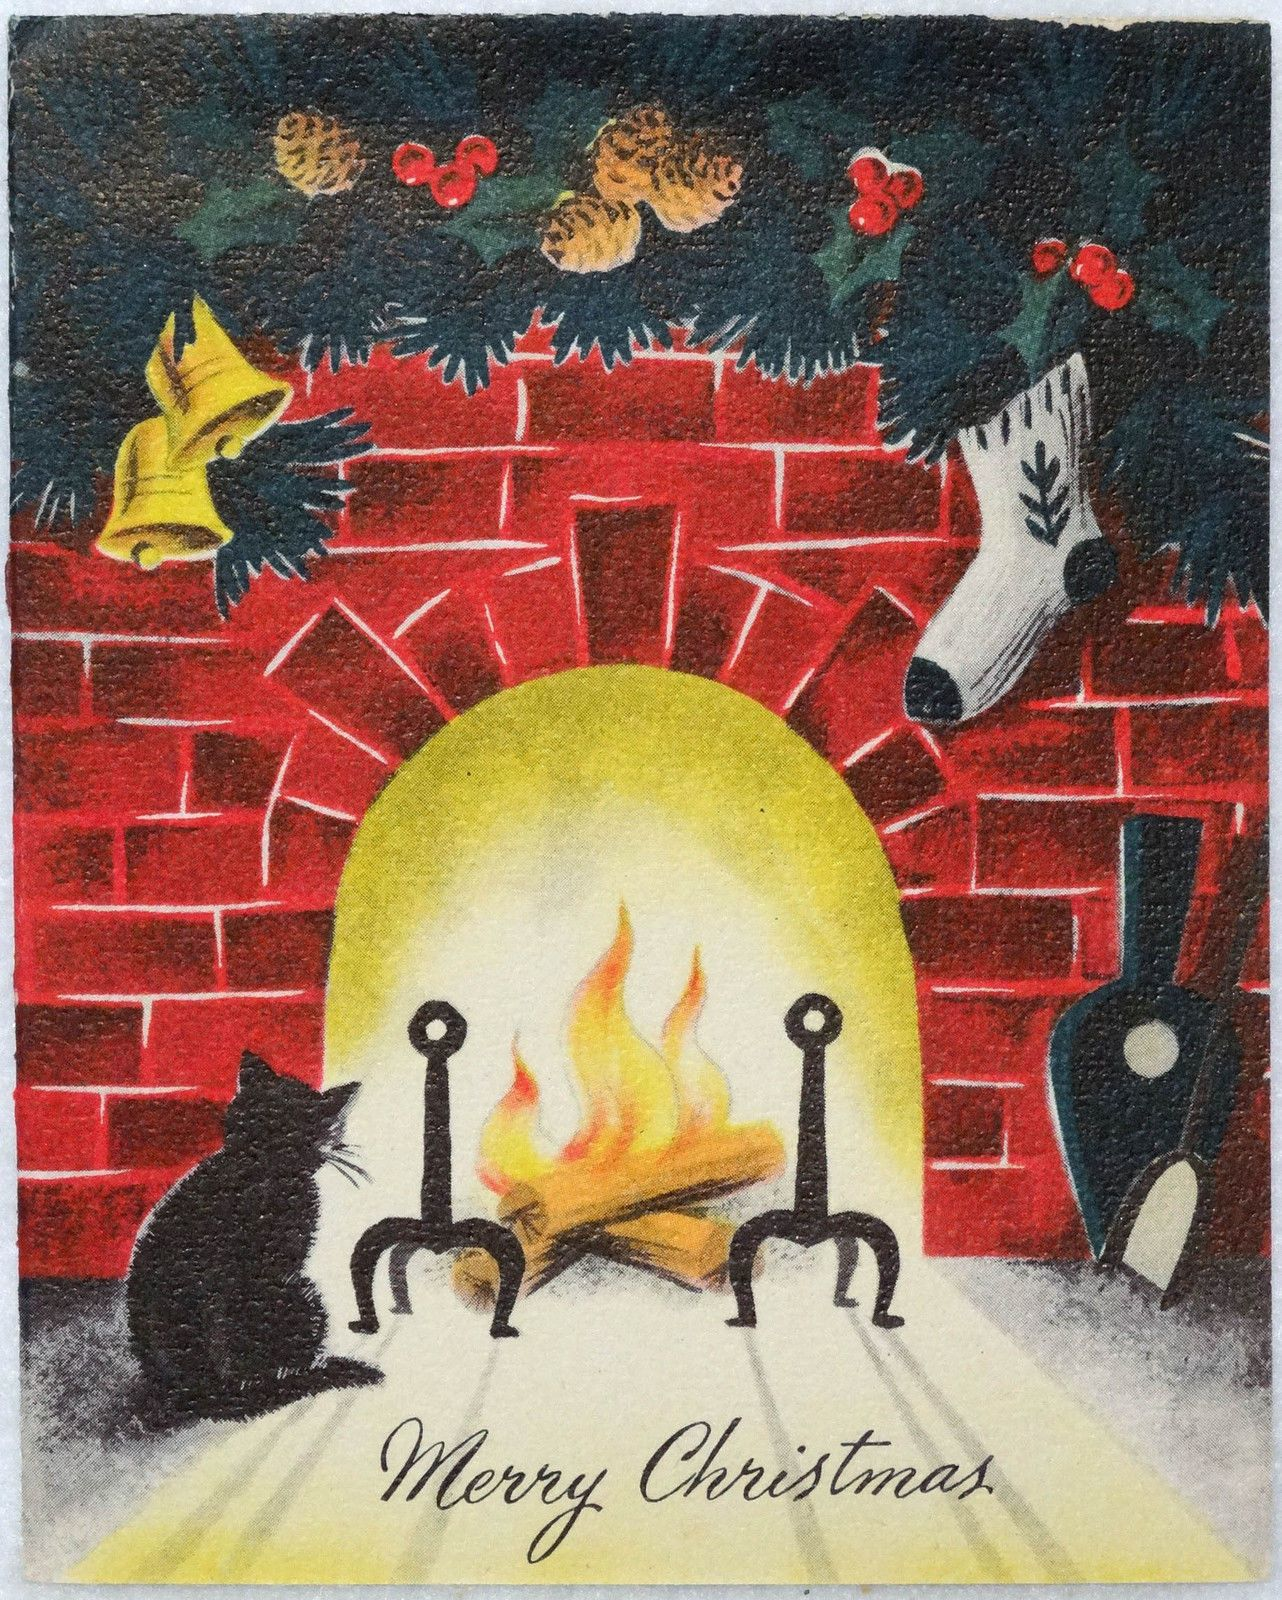 559 40s Norcross Cat By The Hearth Vintage Christmas Greeting Card